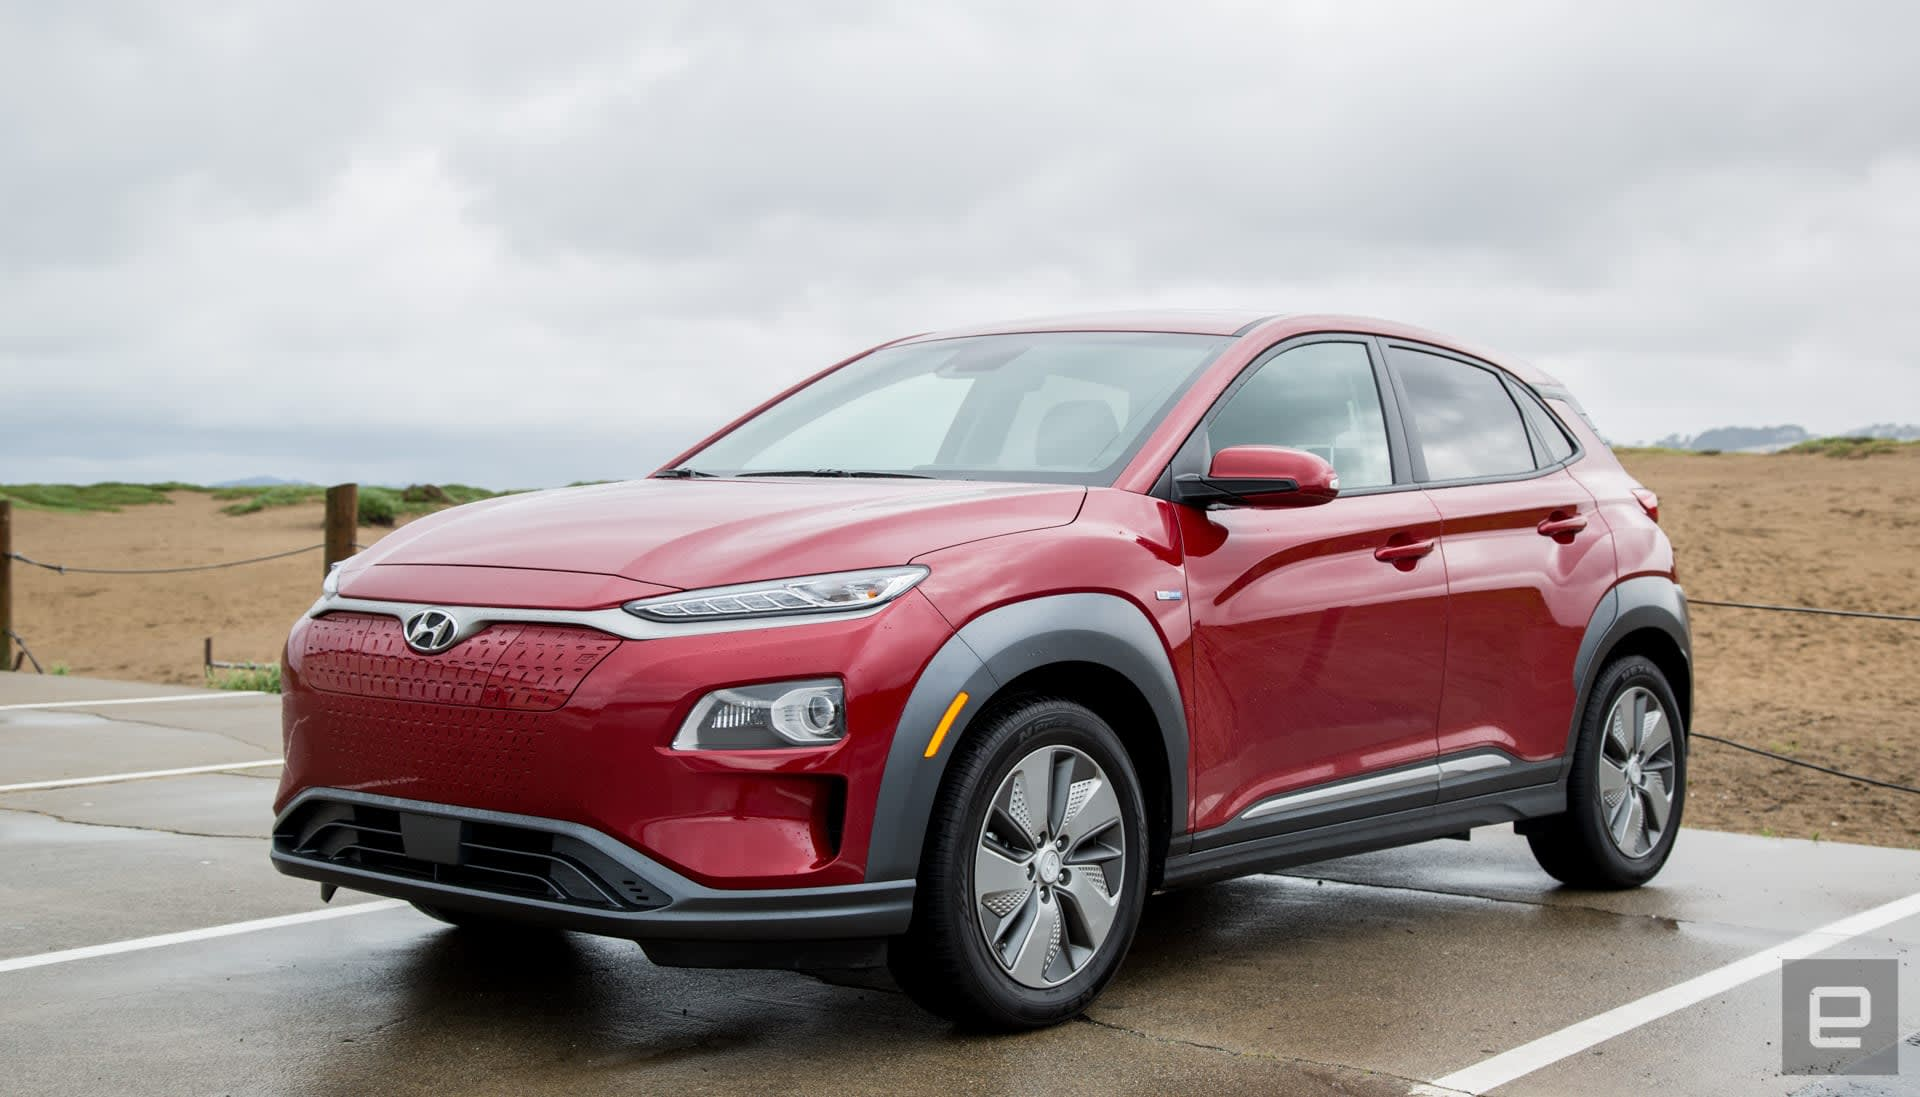 Hyundai S Kona Ev Is The Car You Didn T Know You Were Waiting For